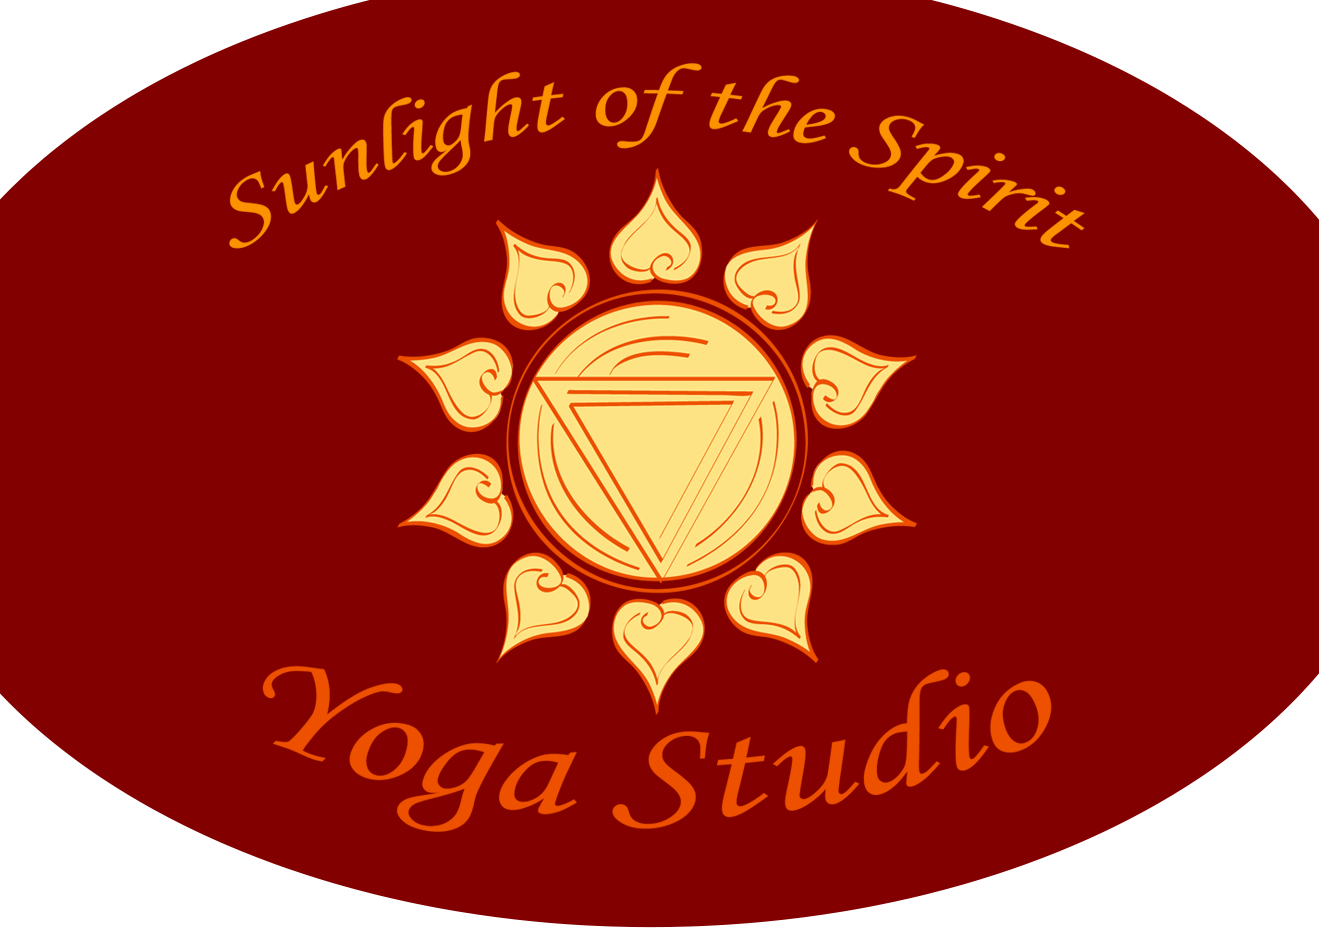 Sunlight of the Spirit Yoga Studio